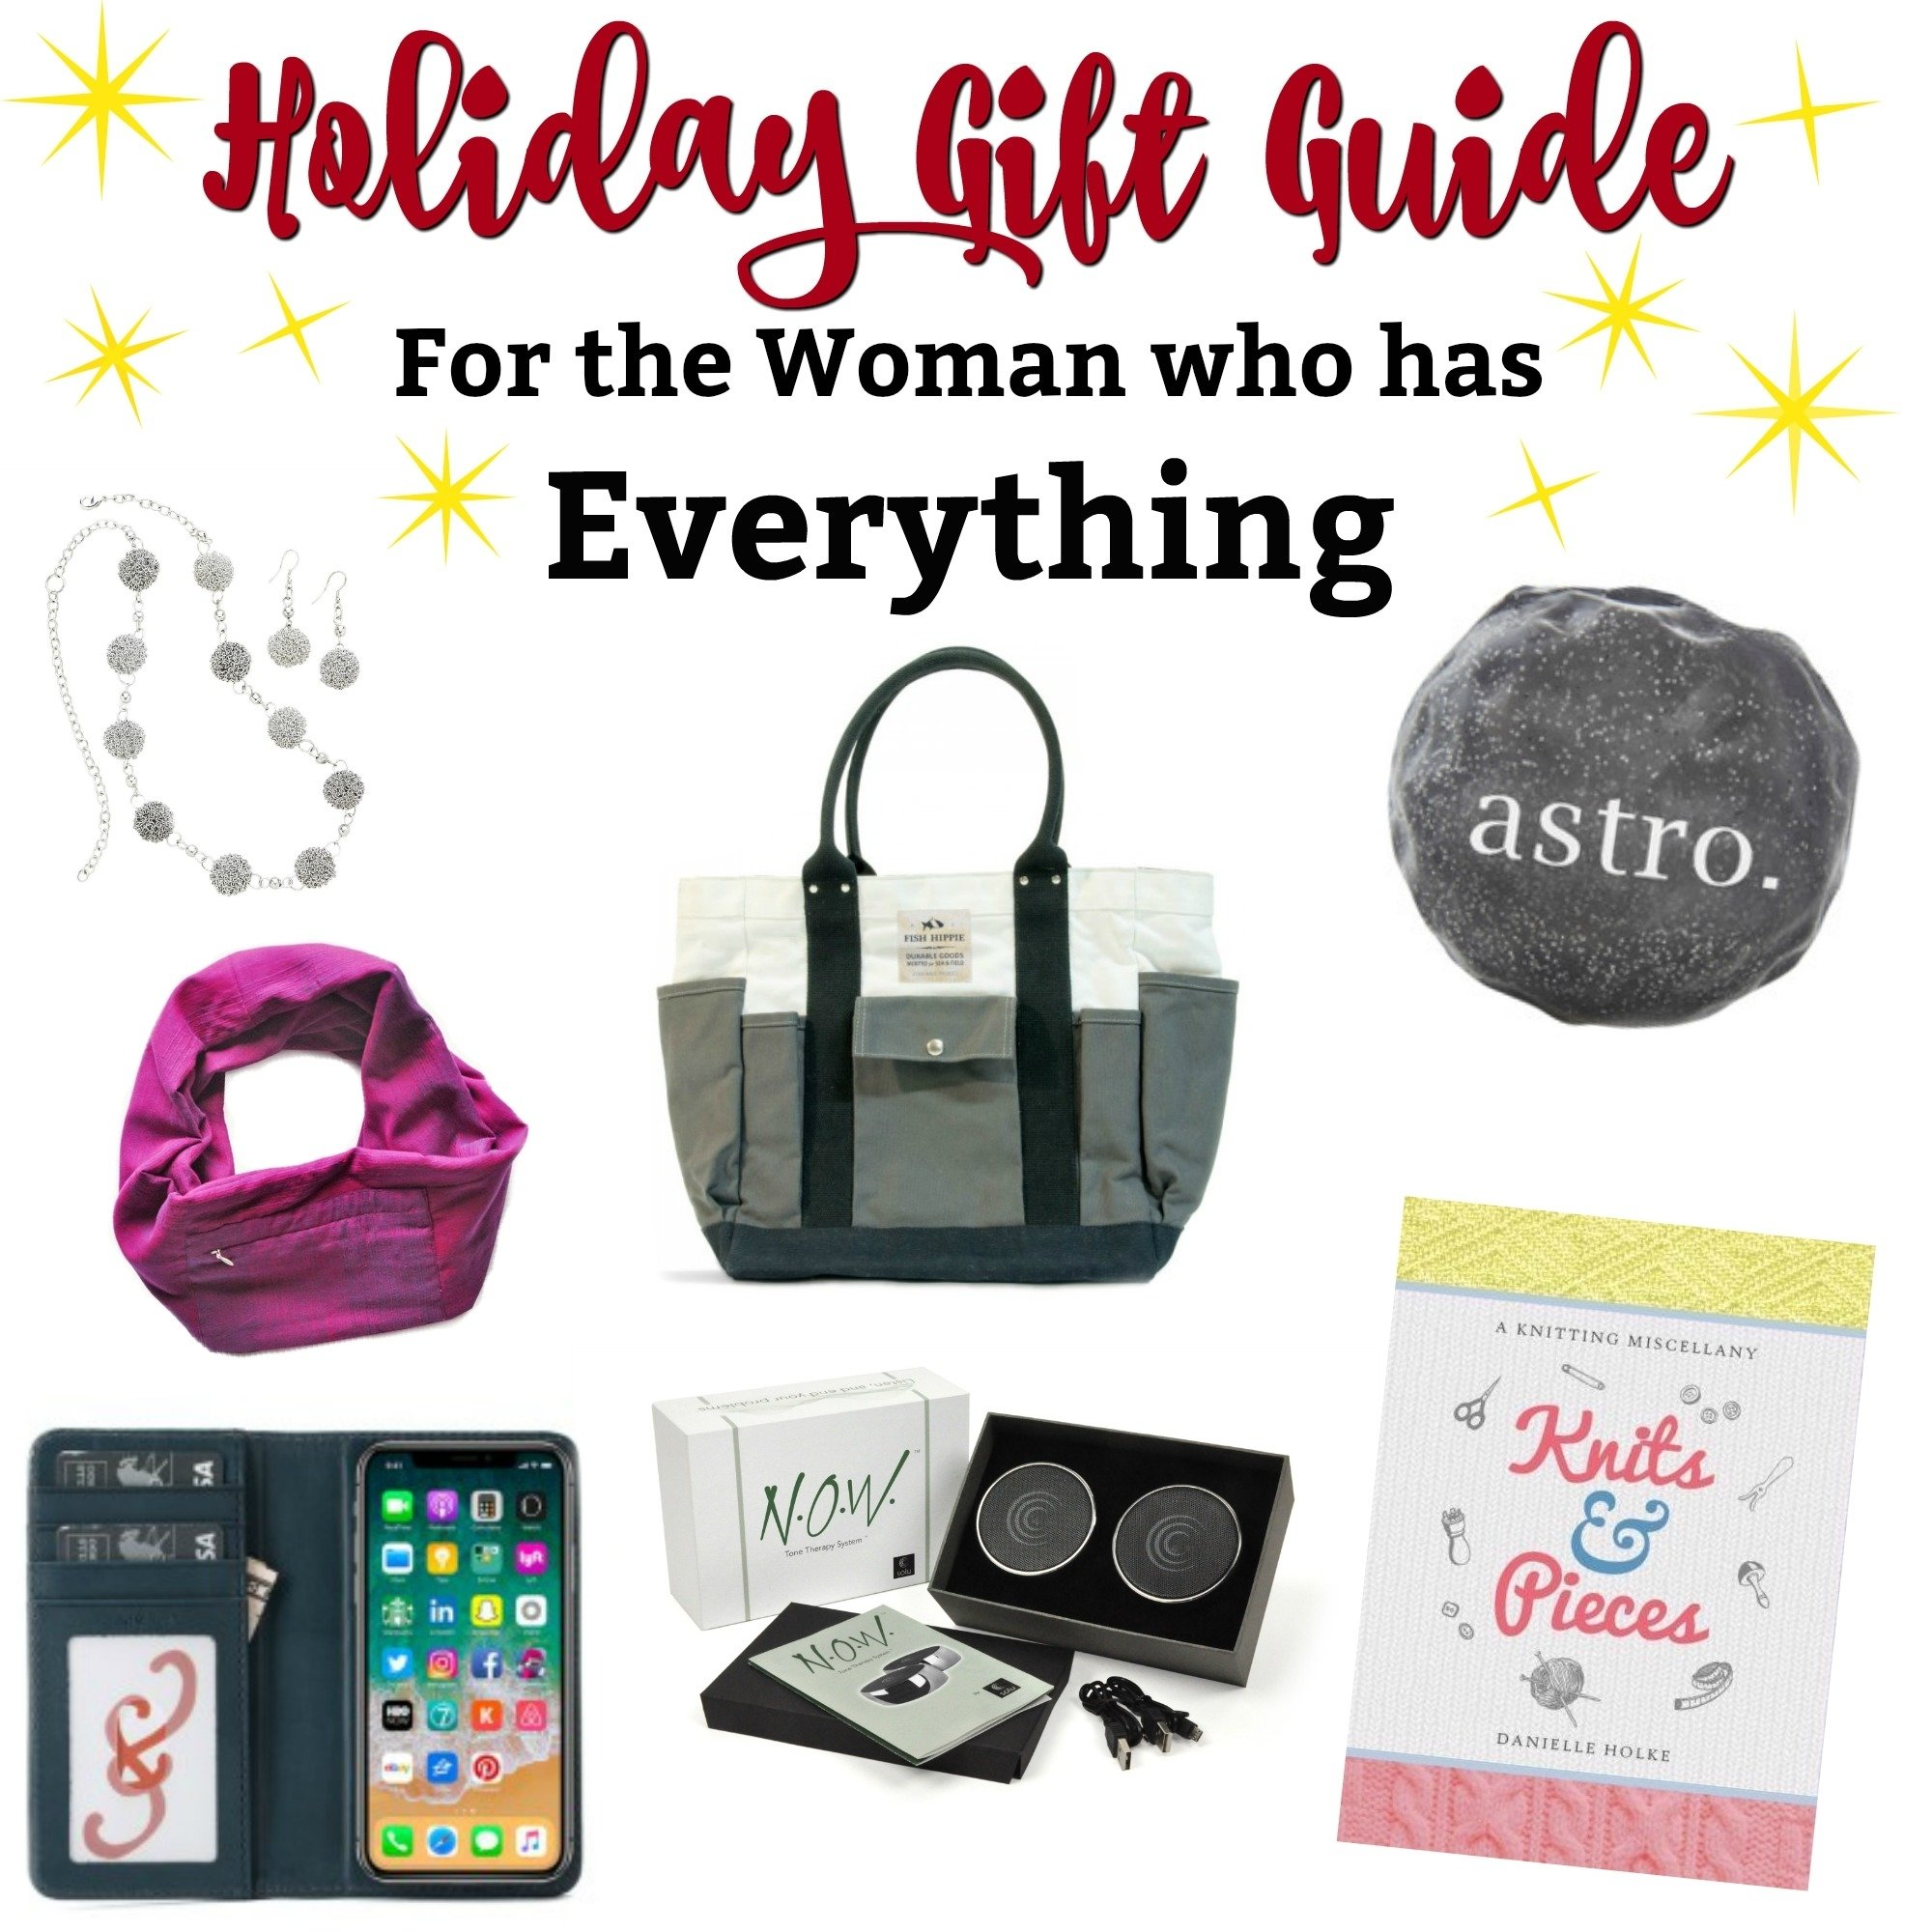 10 Unique Gift Ideas For Women Who Have Everything gift guide for the woman who has everything sarah scoop 1 2020